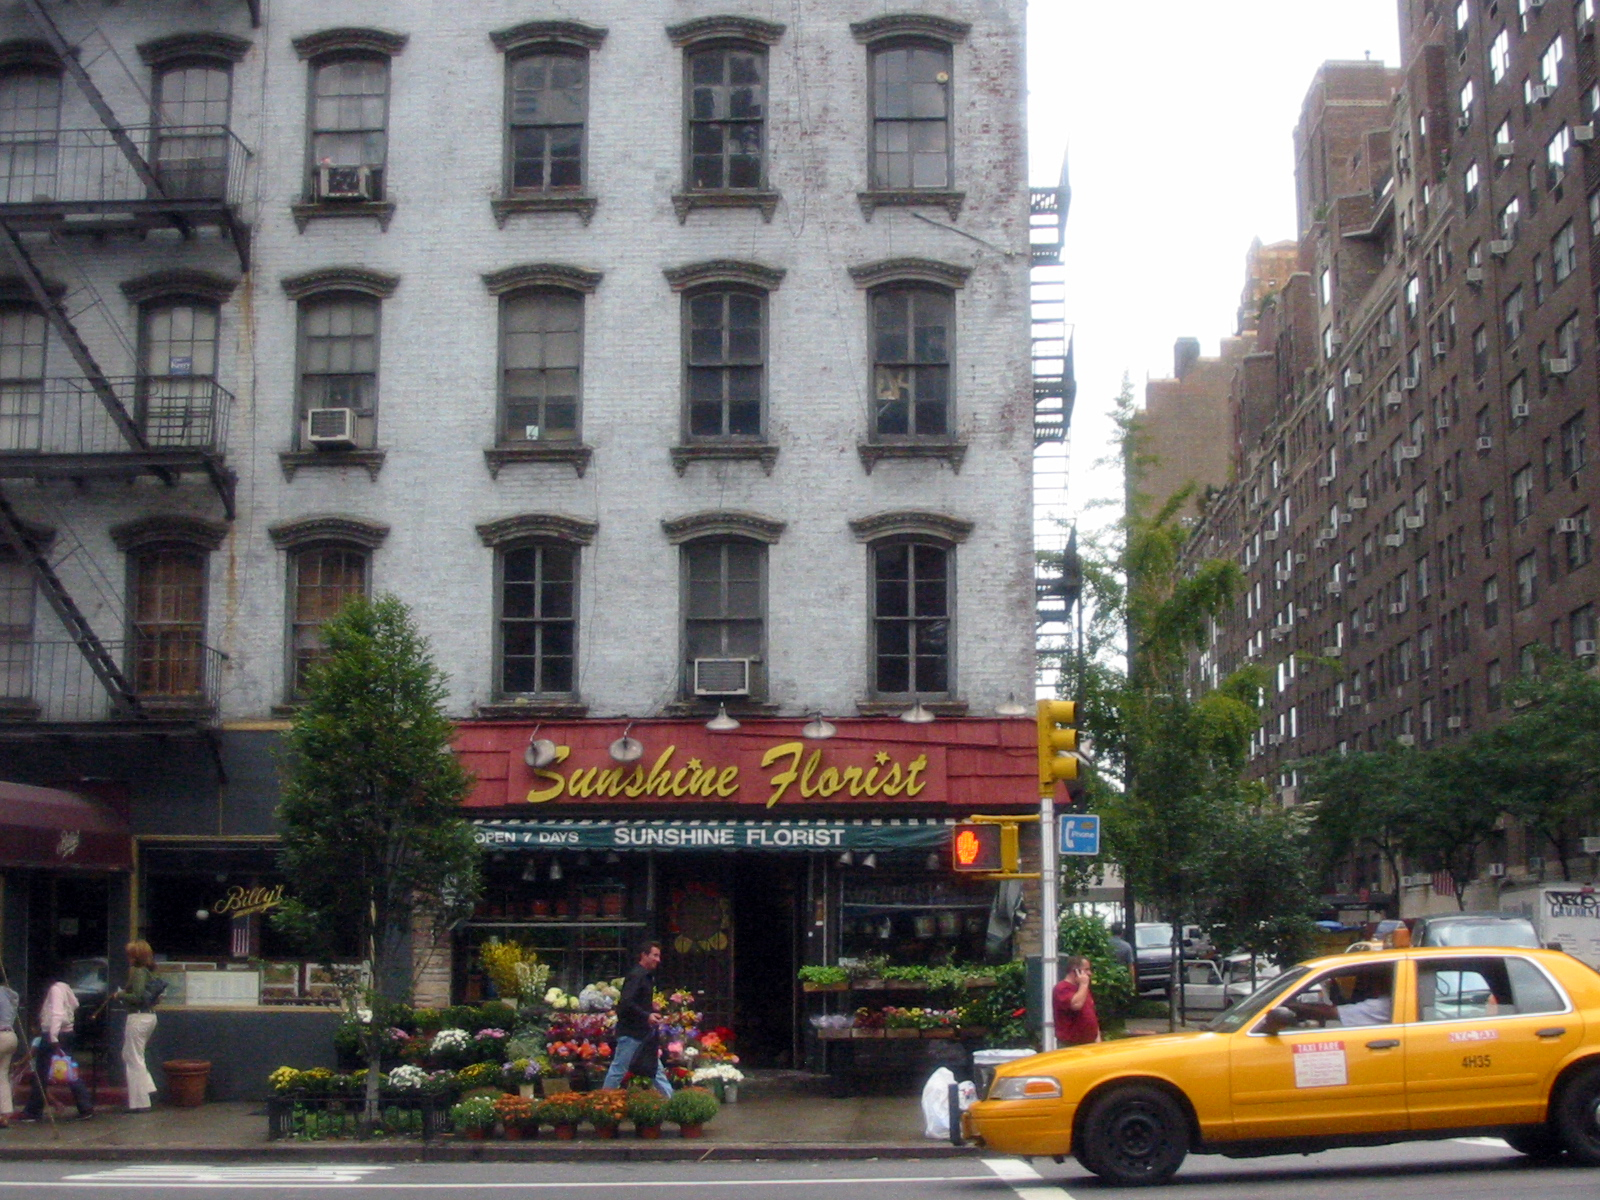 52nd and 1st Avenue